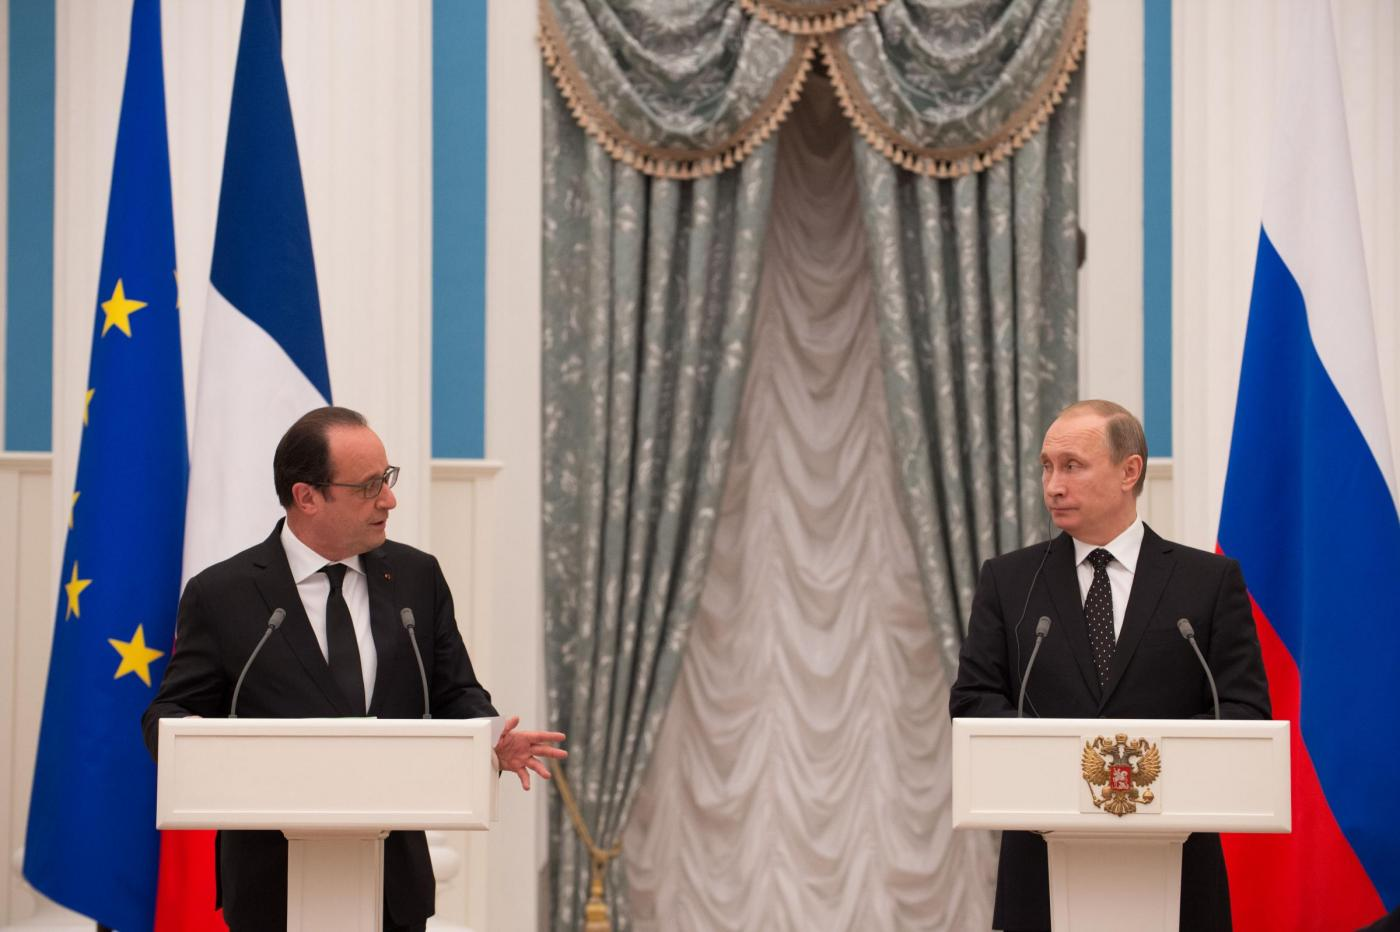 Conferenza stampa Putin Hollande a Mosca